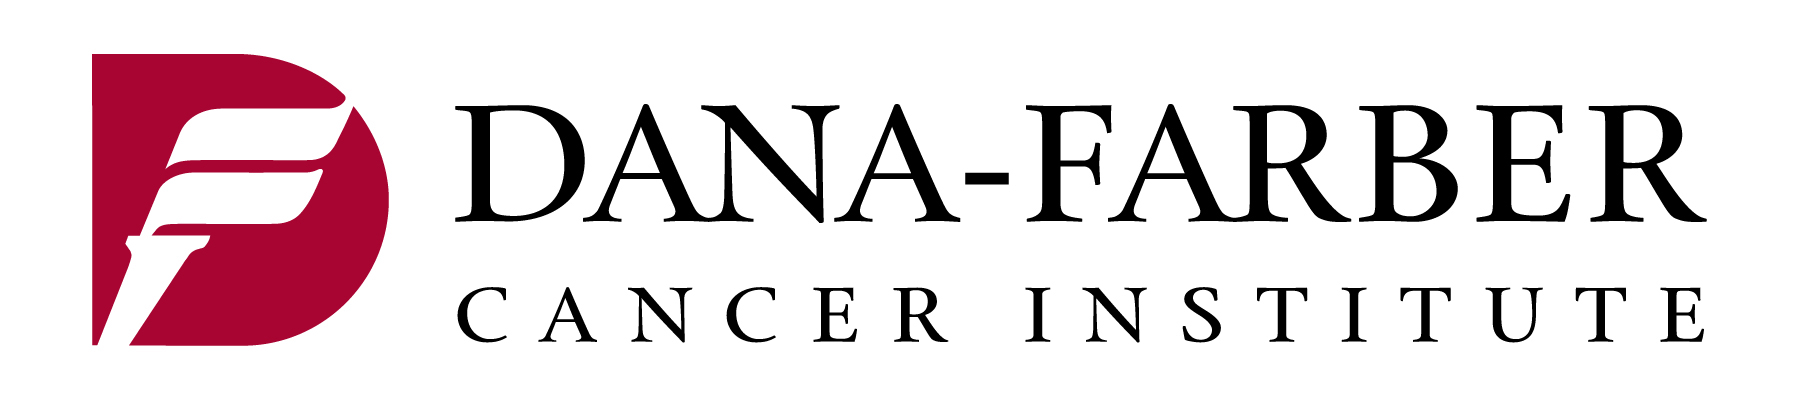 Dana-Farber Cancer Institute torch logo